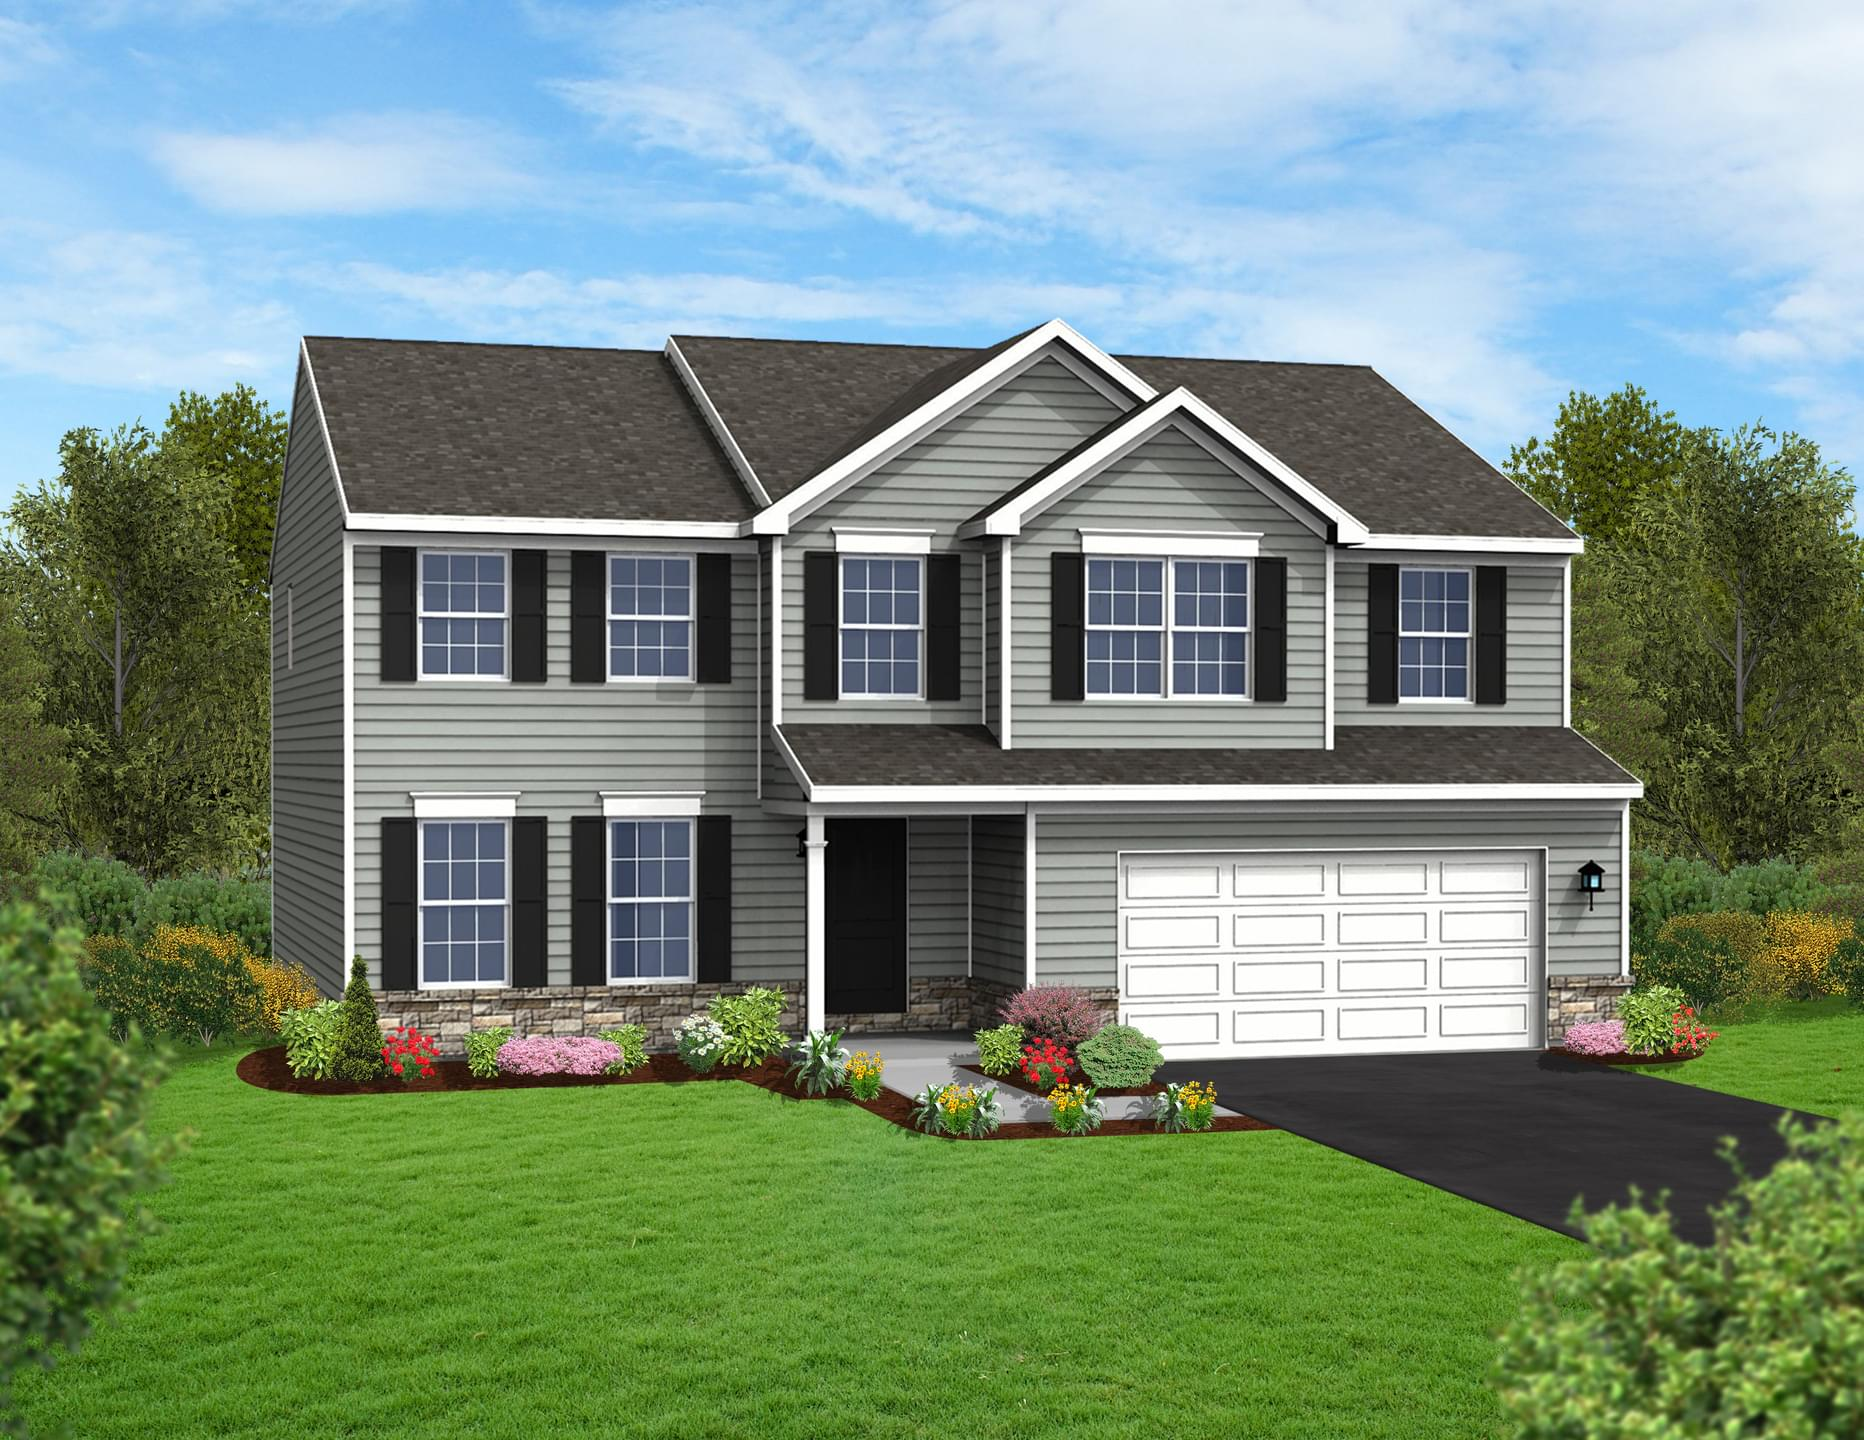 Berks Homes Elevation Image Blue Ridge